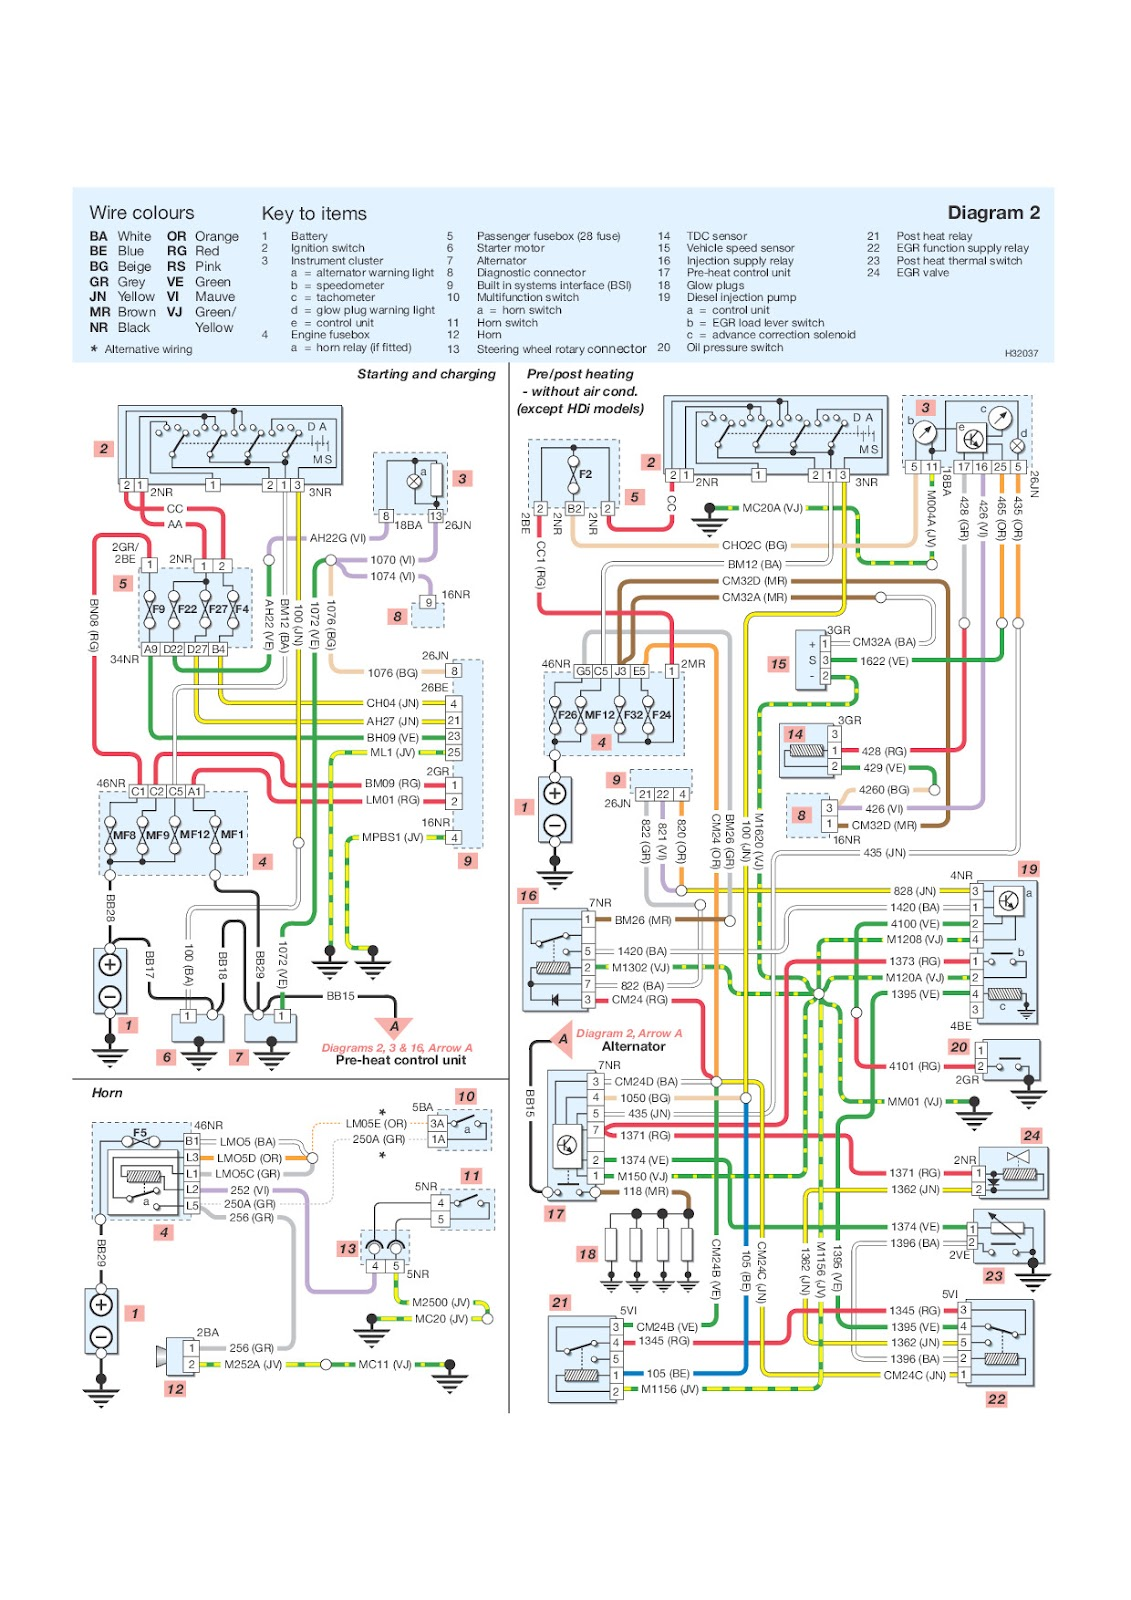 your wiring diagrams source peugeot 206 starting charging horn rh allwiringdiagrams blogspot com peugeot 206 lighting wiring diagram peugeot 306 rear lights wiring diagram